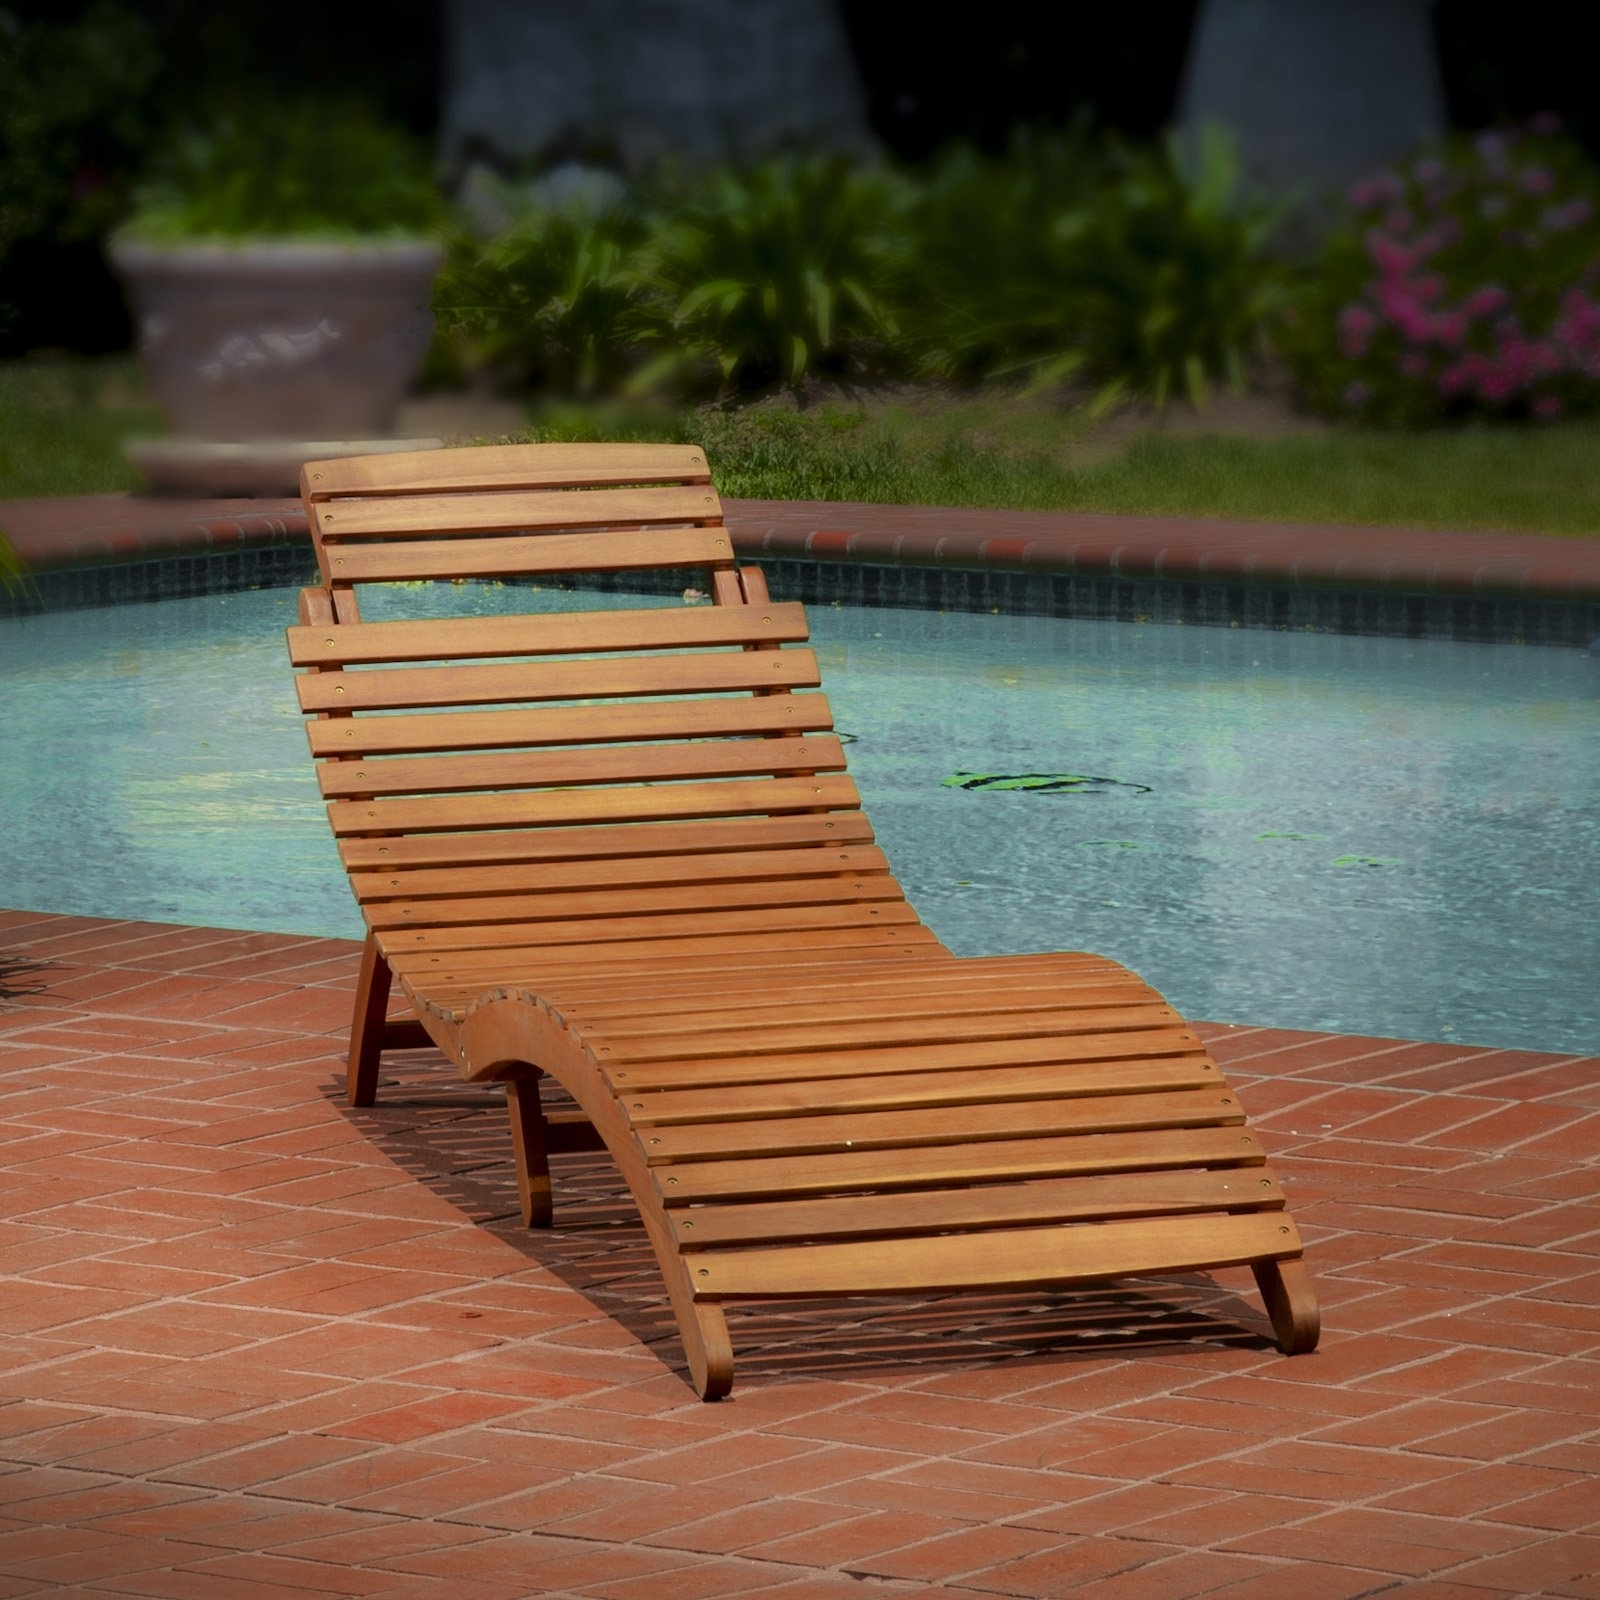 Fashionable Wood Chaise Lounge Chairs Intended For Lahaina Wood Outdoor Chaise Lounge – Walmart (View 4 of 15)